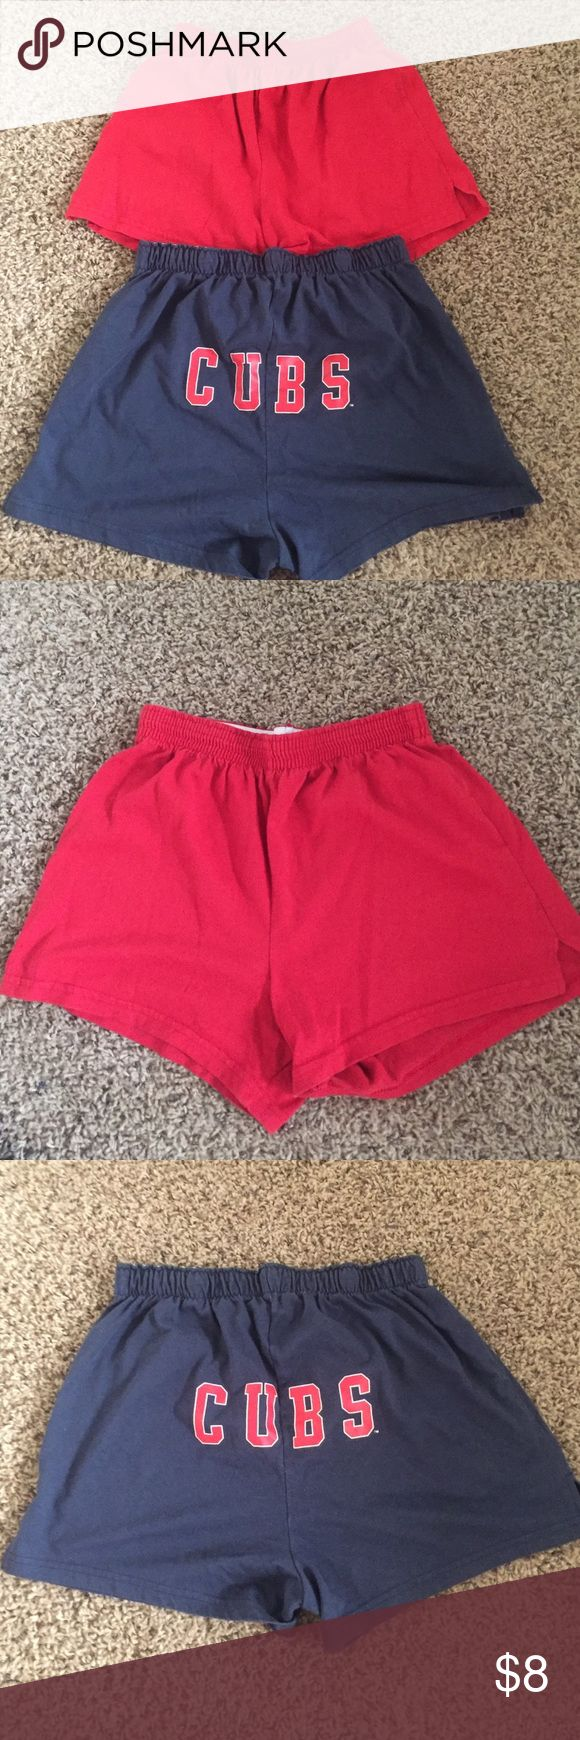 RED Soffee Shorts  (cute and comfy!) Red soffee shorts(size s). 🔵Please use the offer button for all offers!🔵 ❌NO TRADES!❌ Soffe Shorts